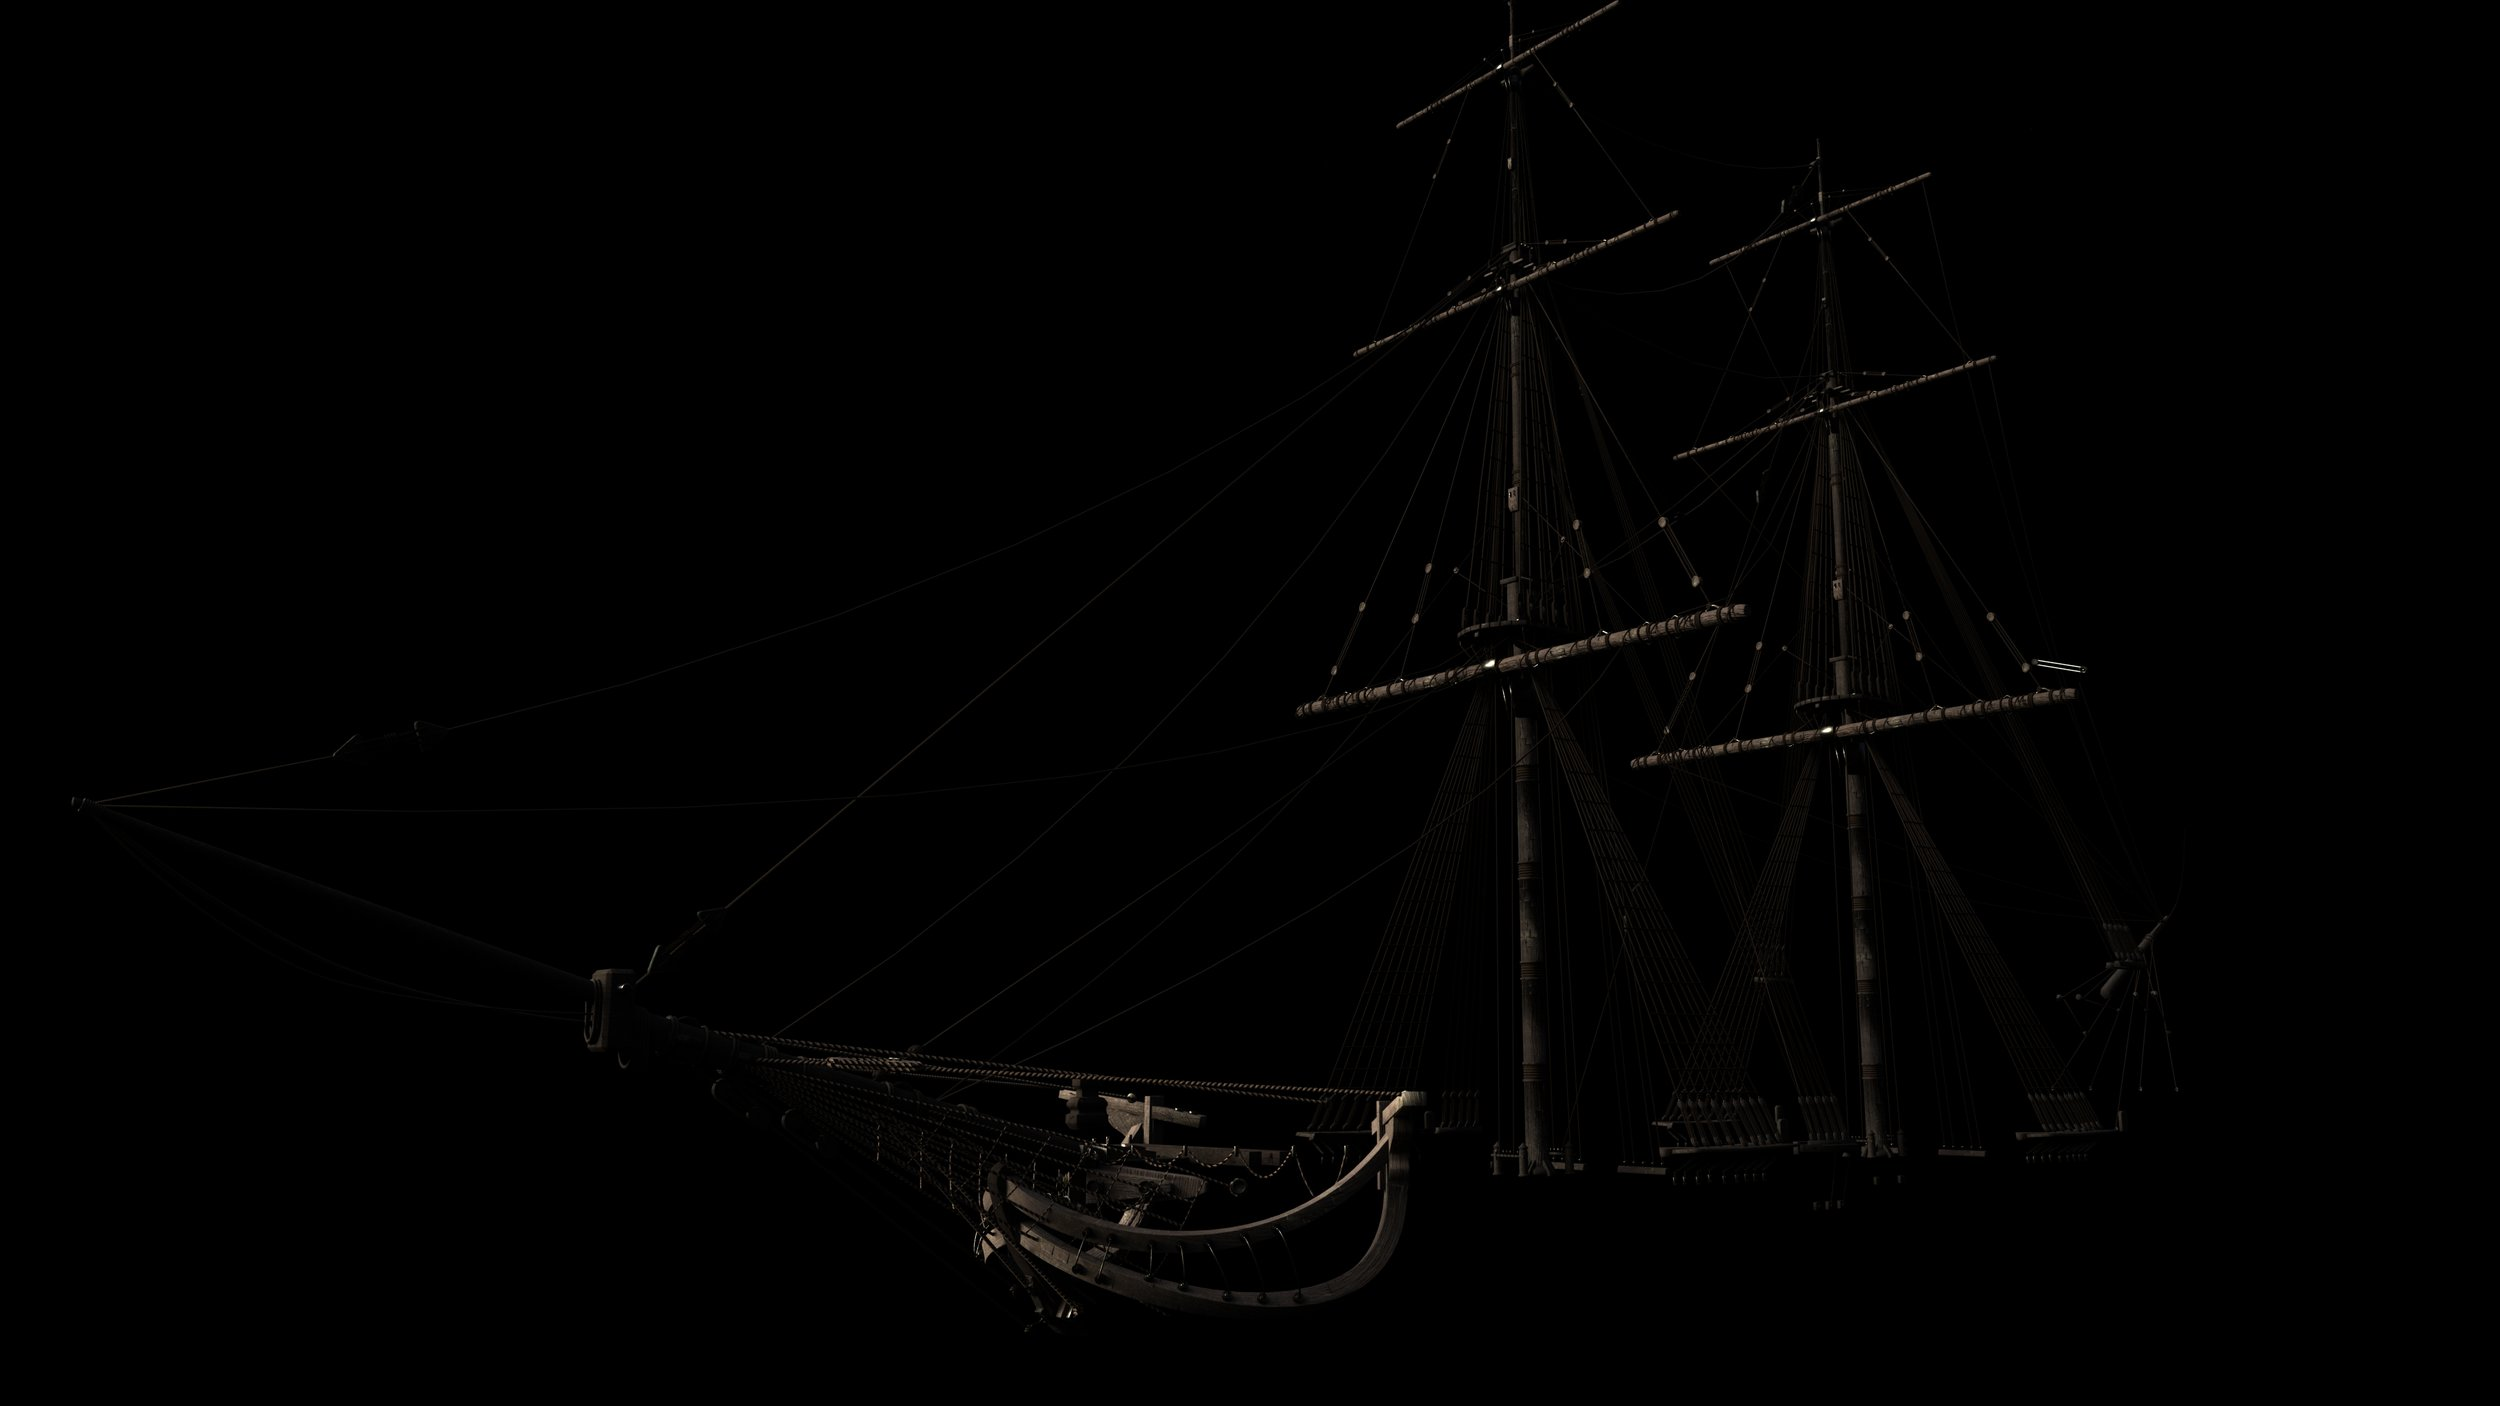 Houdini Model Tall Ship Masts and Rigging